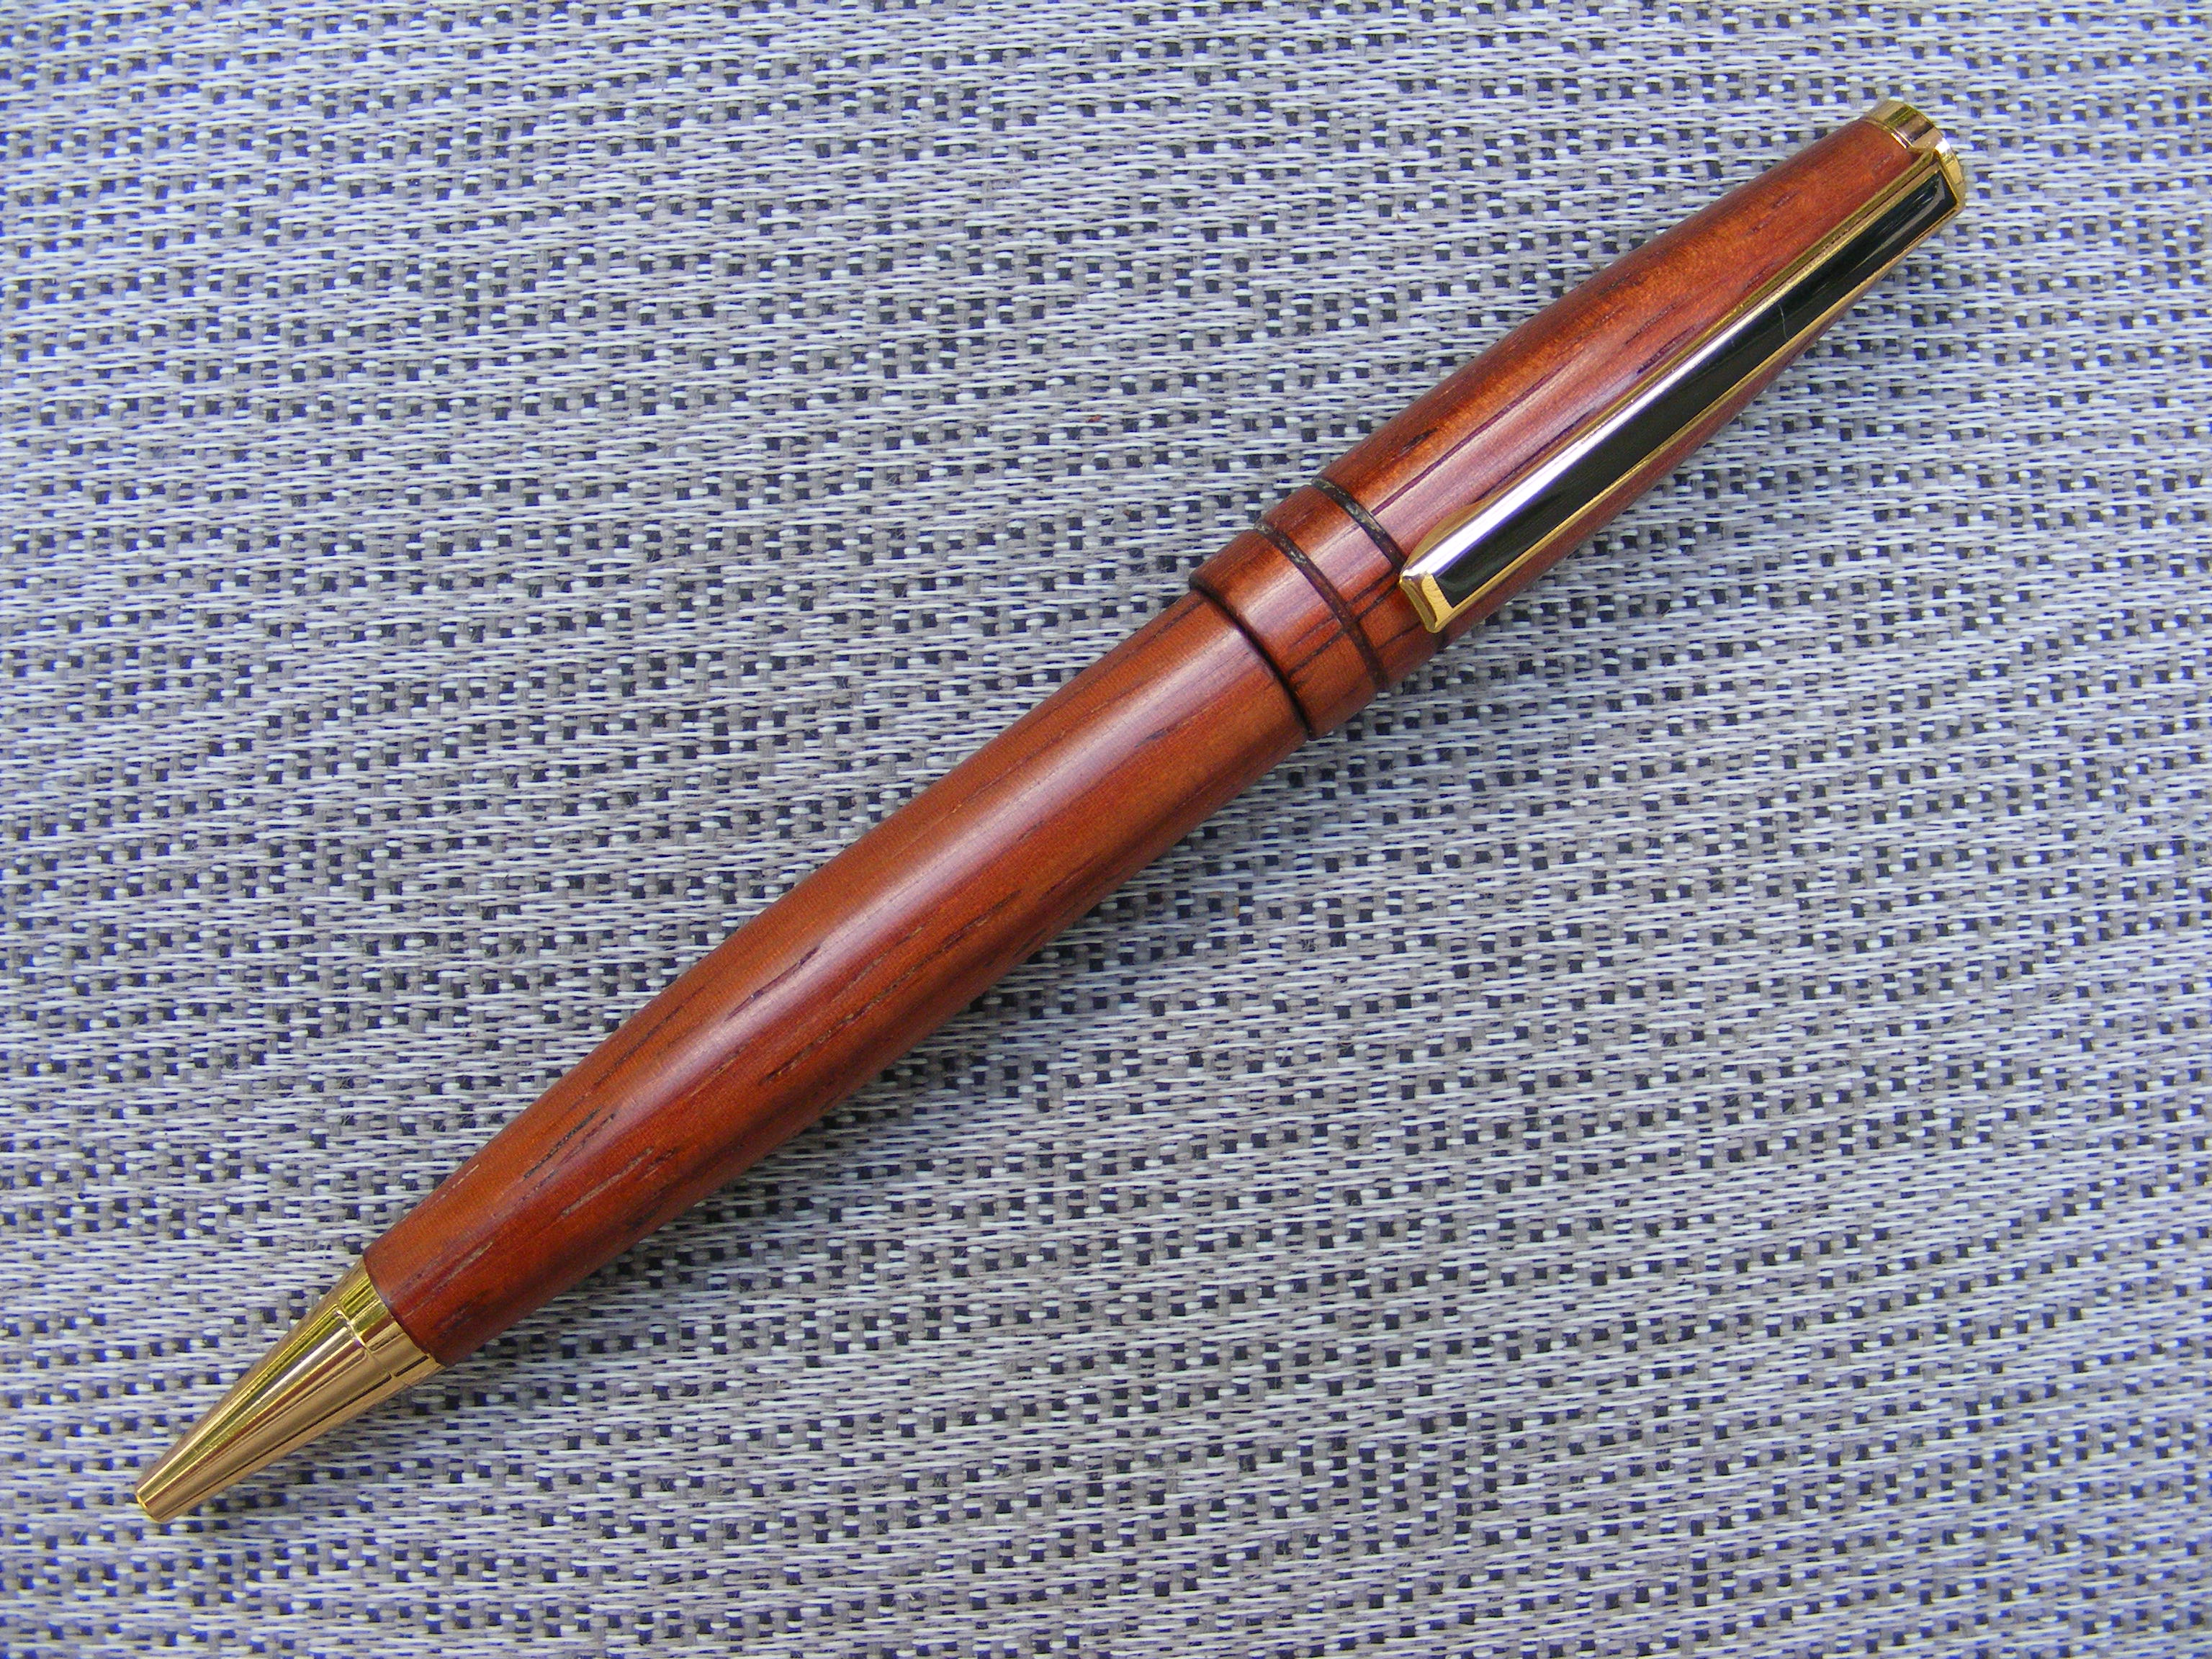 modified slimline pens